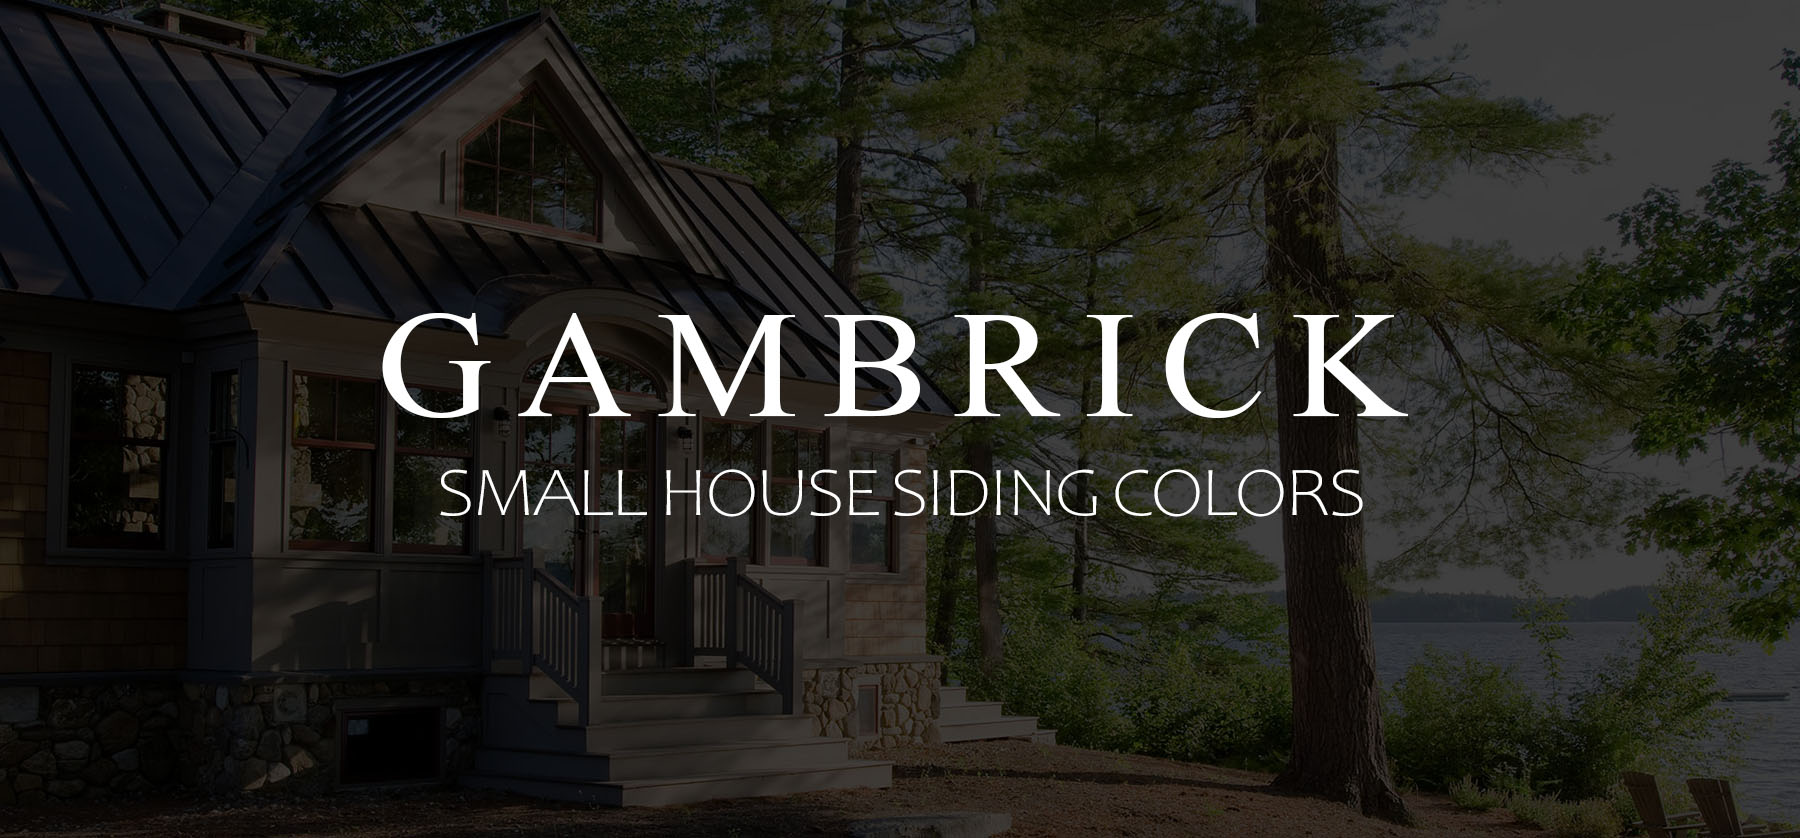 Top Small House Siding Colors Nj Custom Home Builder Gambrick